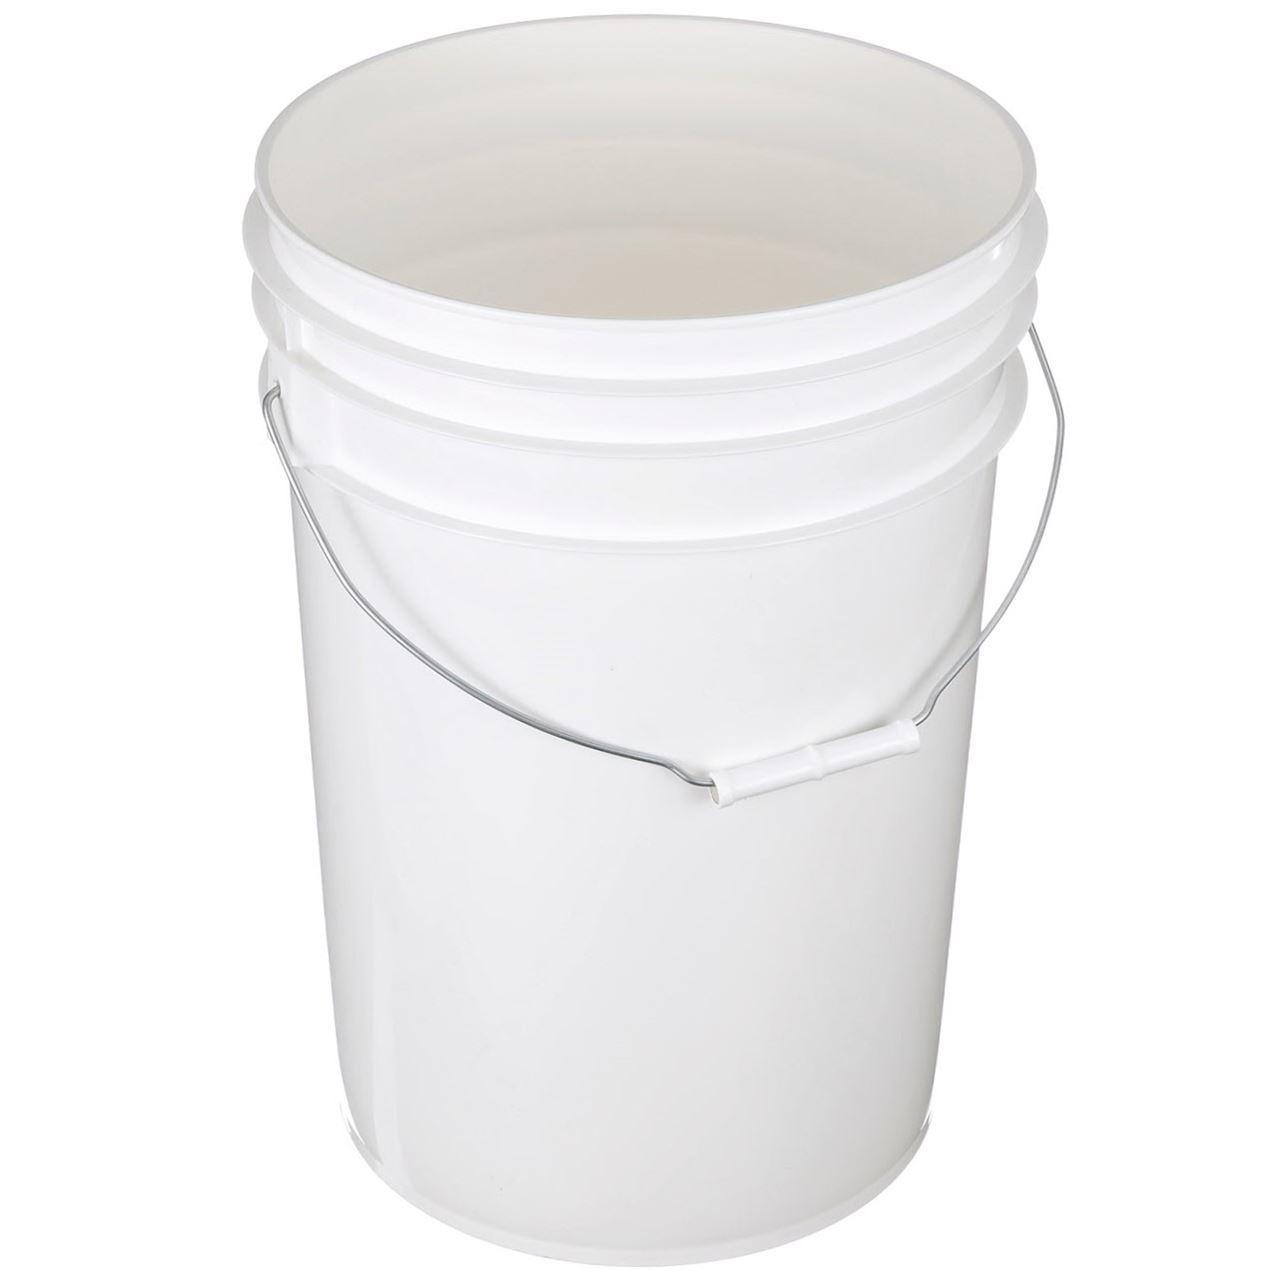 6 Gallon White HDPE Plastic Round Pail with Metal Swing Handle